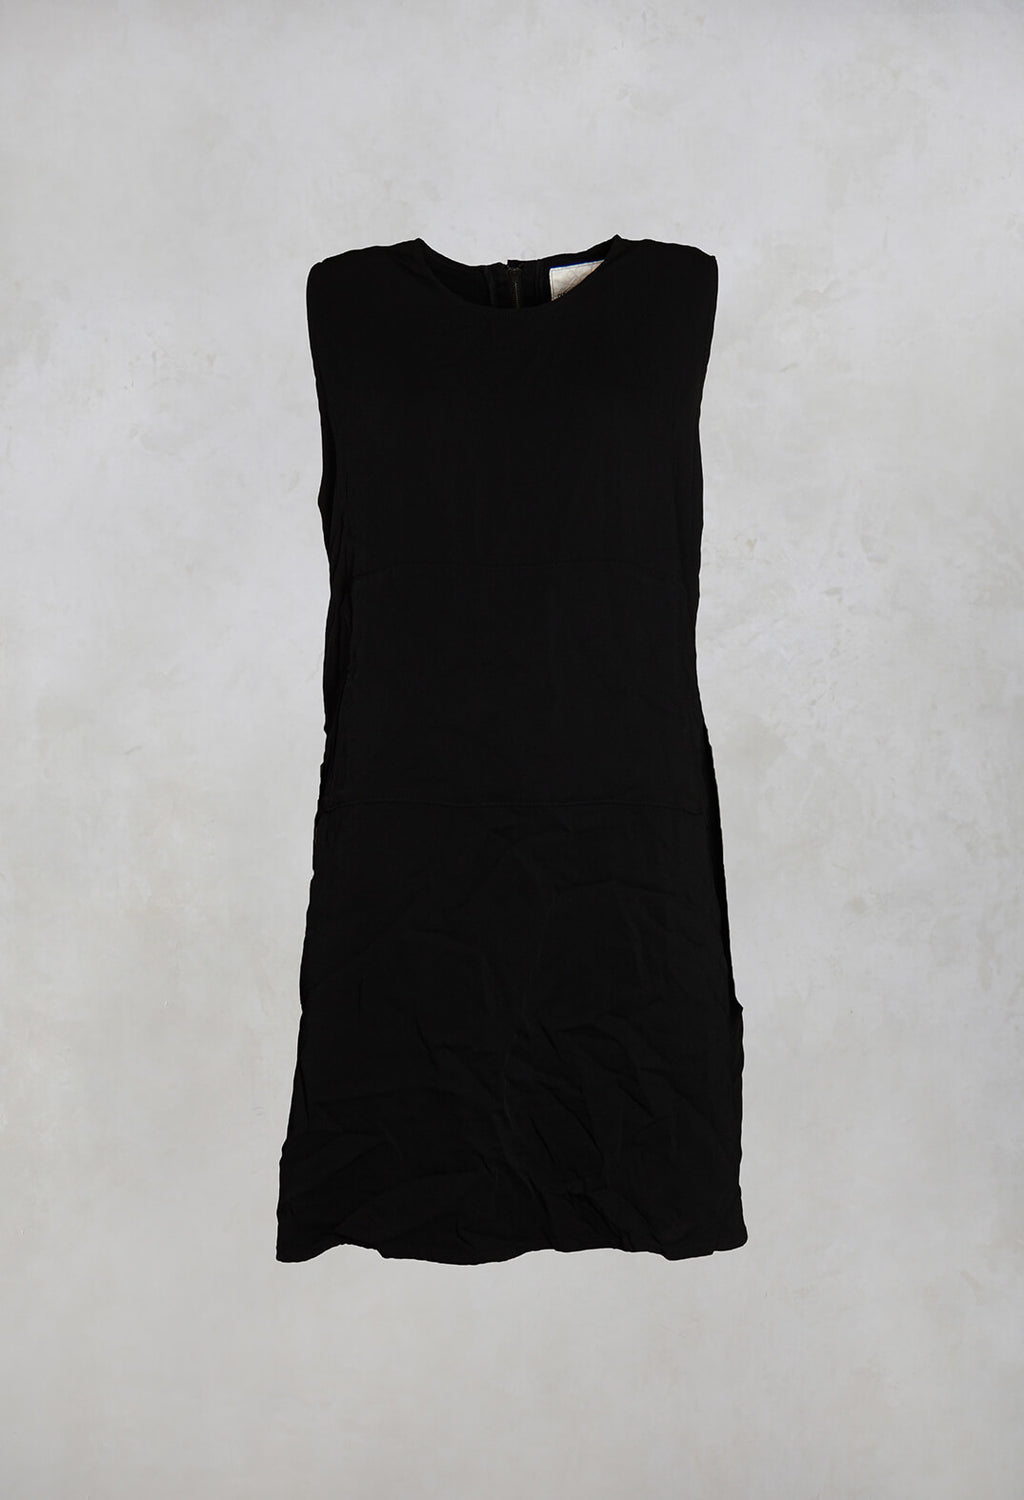 Ockero Sleeveless Dress in Black